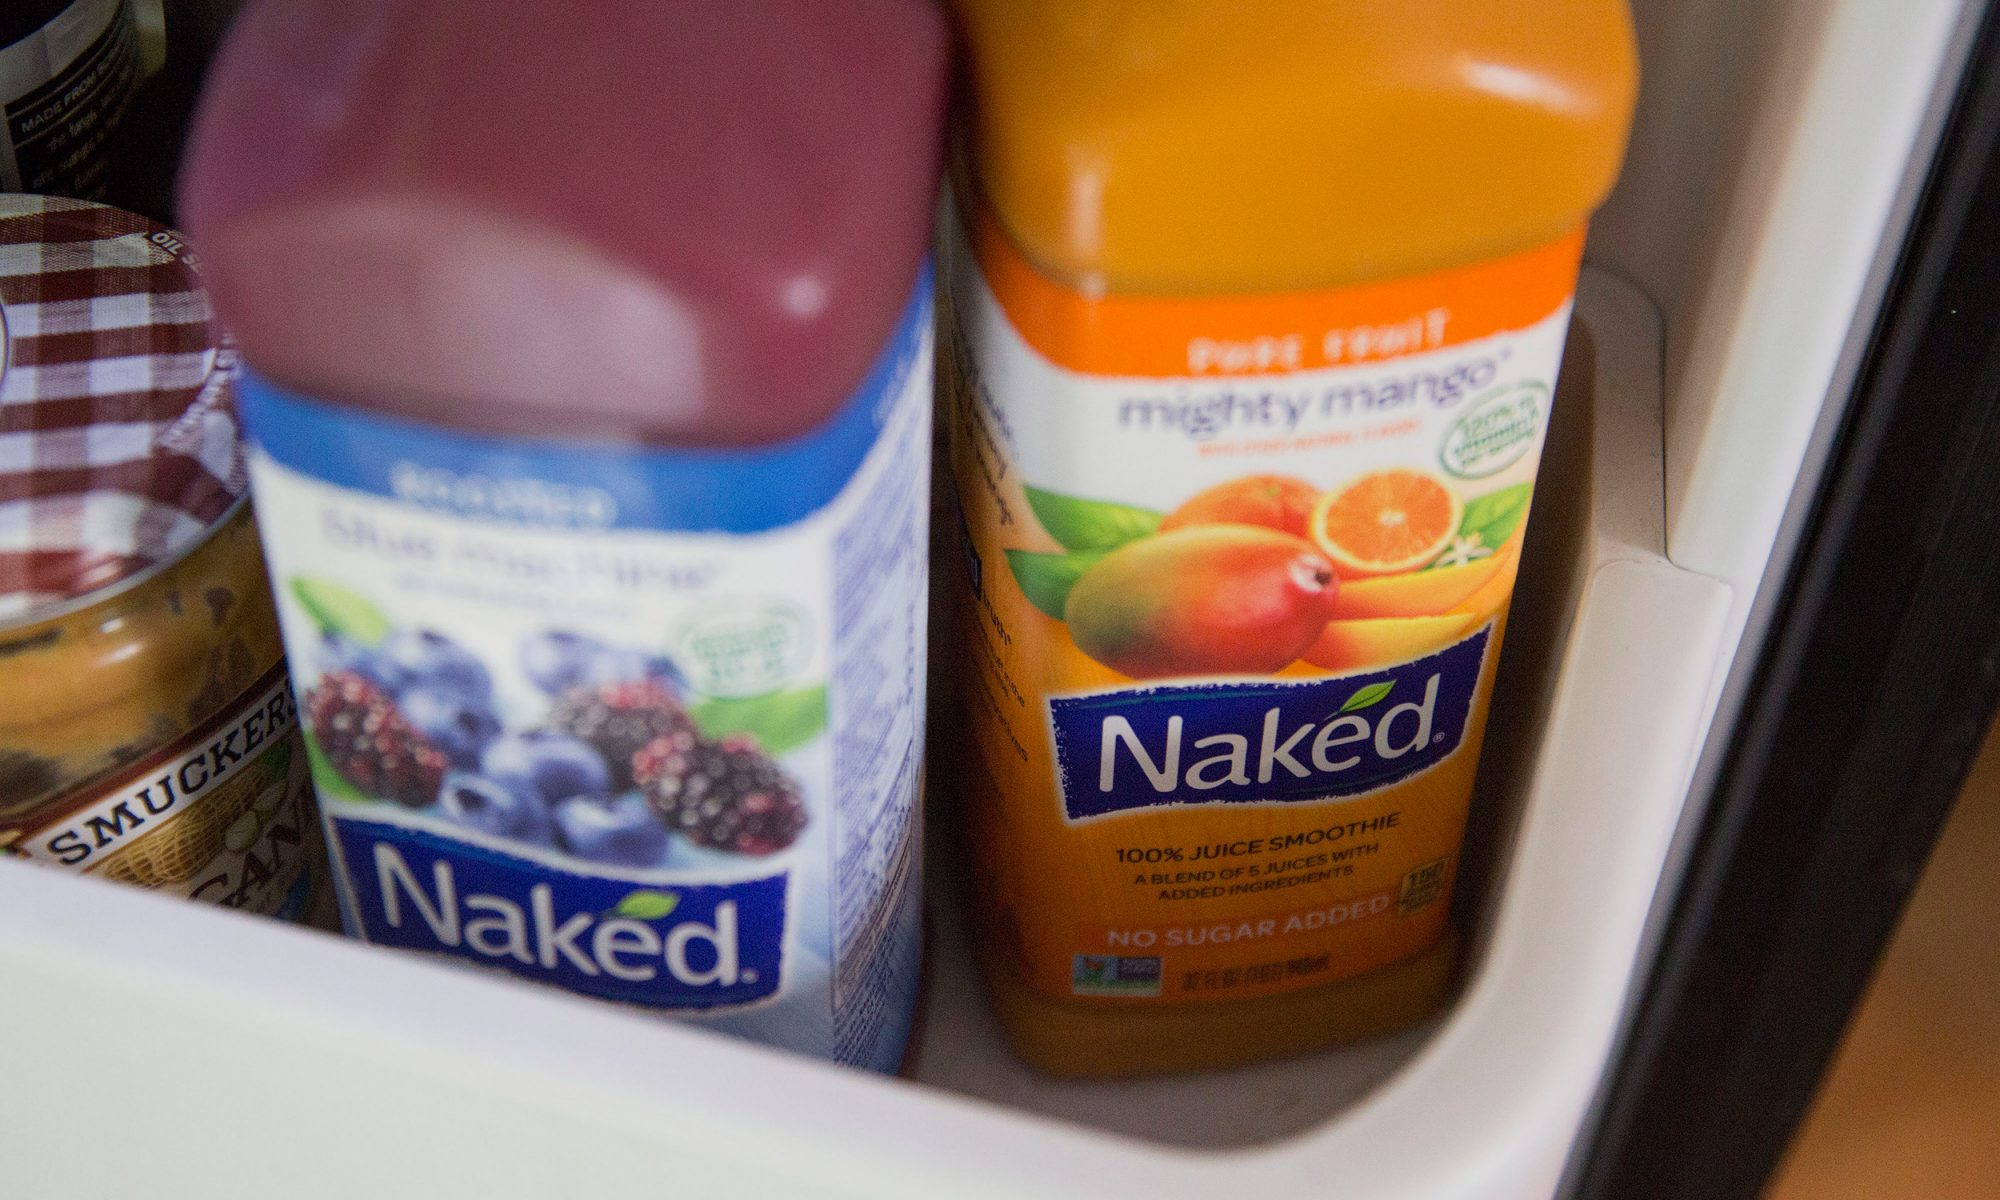 EC: Naked Juice Is Being Sued Again for Overstating Its Health Benefits